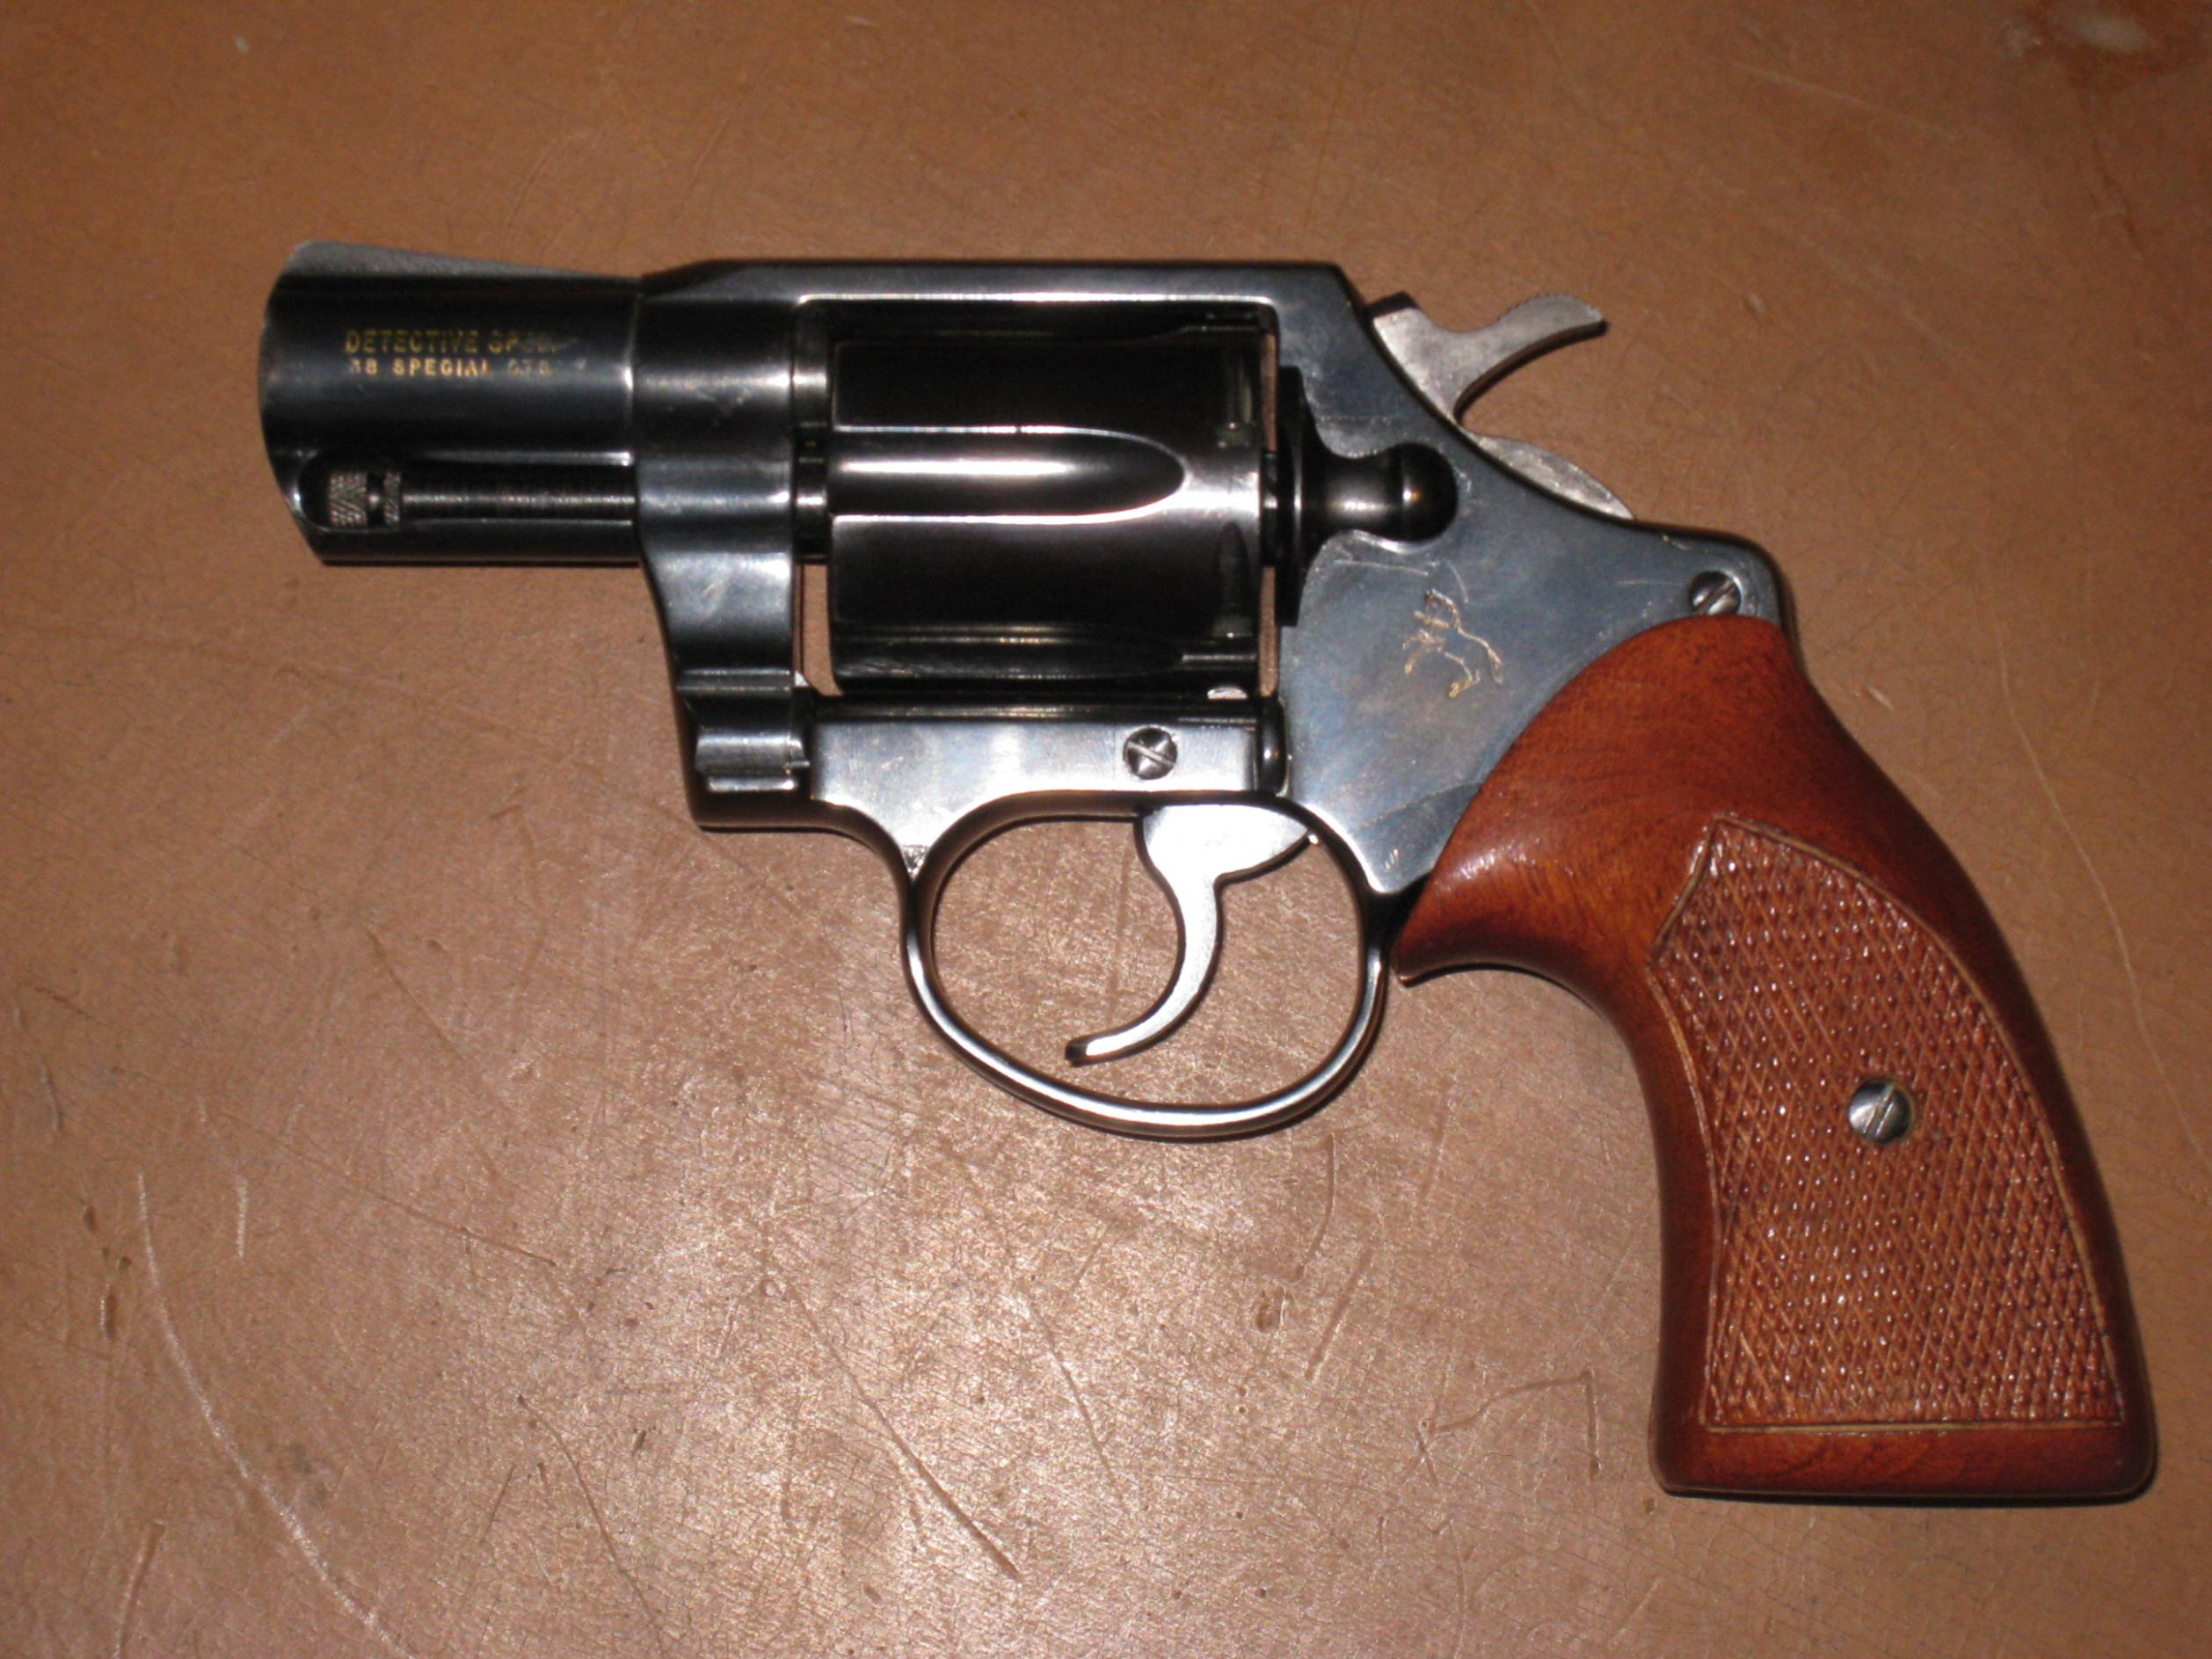 Does Anyone Out There Take Colt Revolvers Seriously?-picture-017.jpg